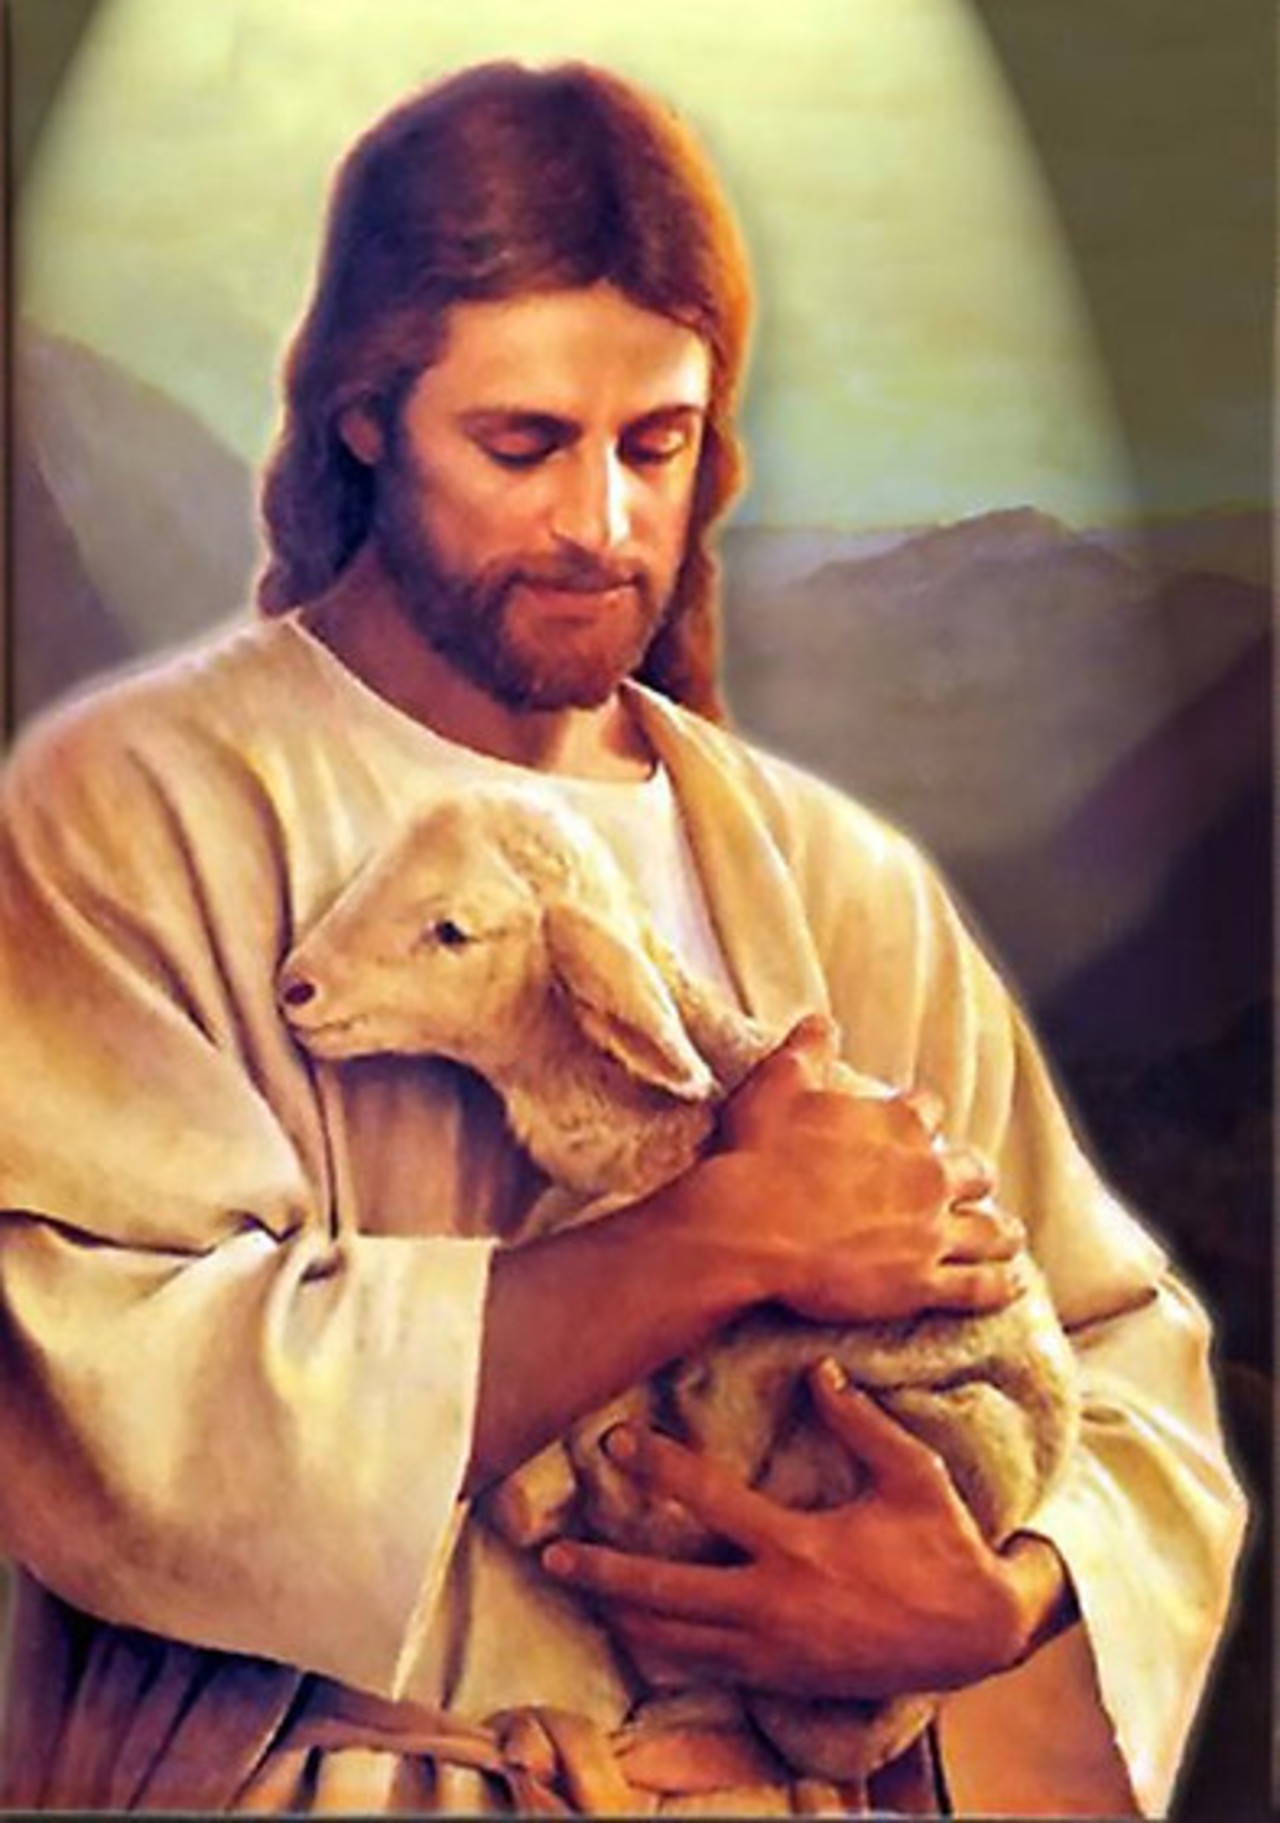 Jesus with a Sheep in Hands 276.99 Kb